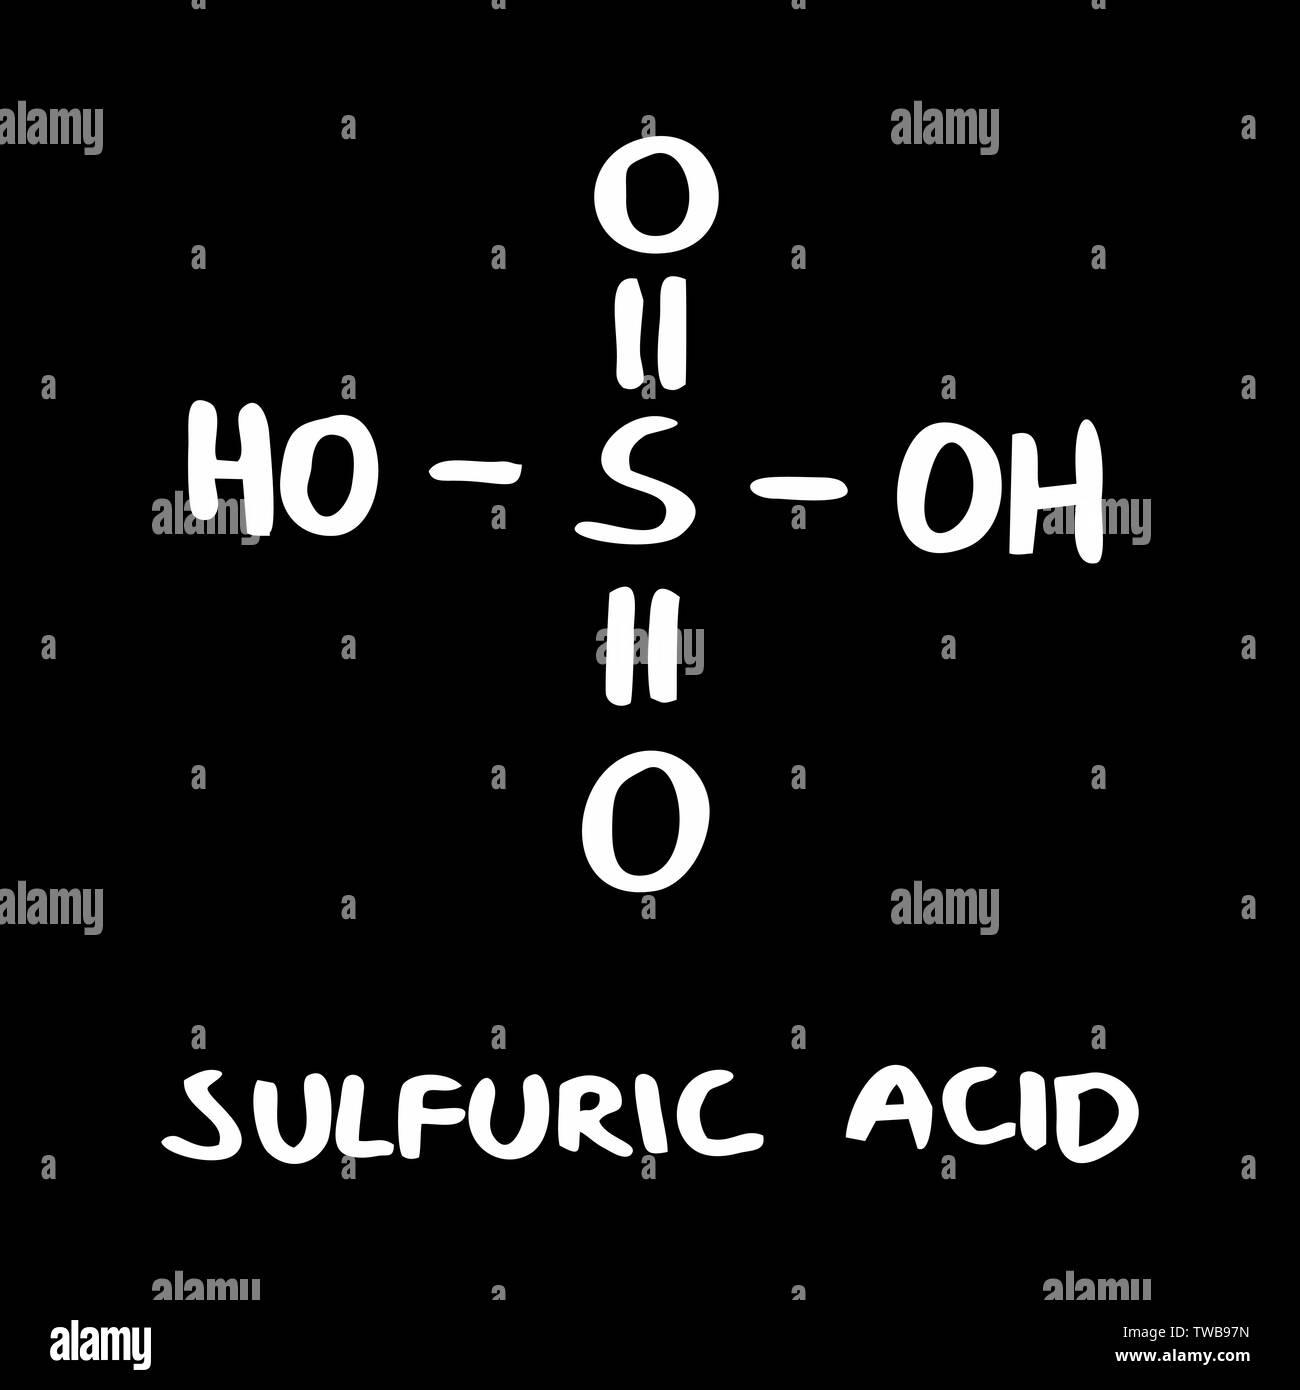 Freehand illustration of the Sulfuric acid formula on dark background - Stock Vector